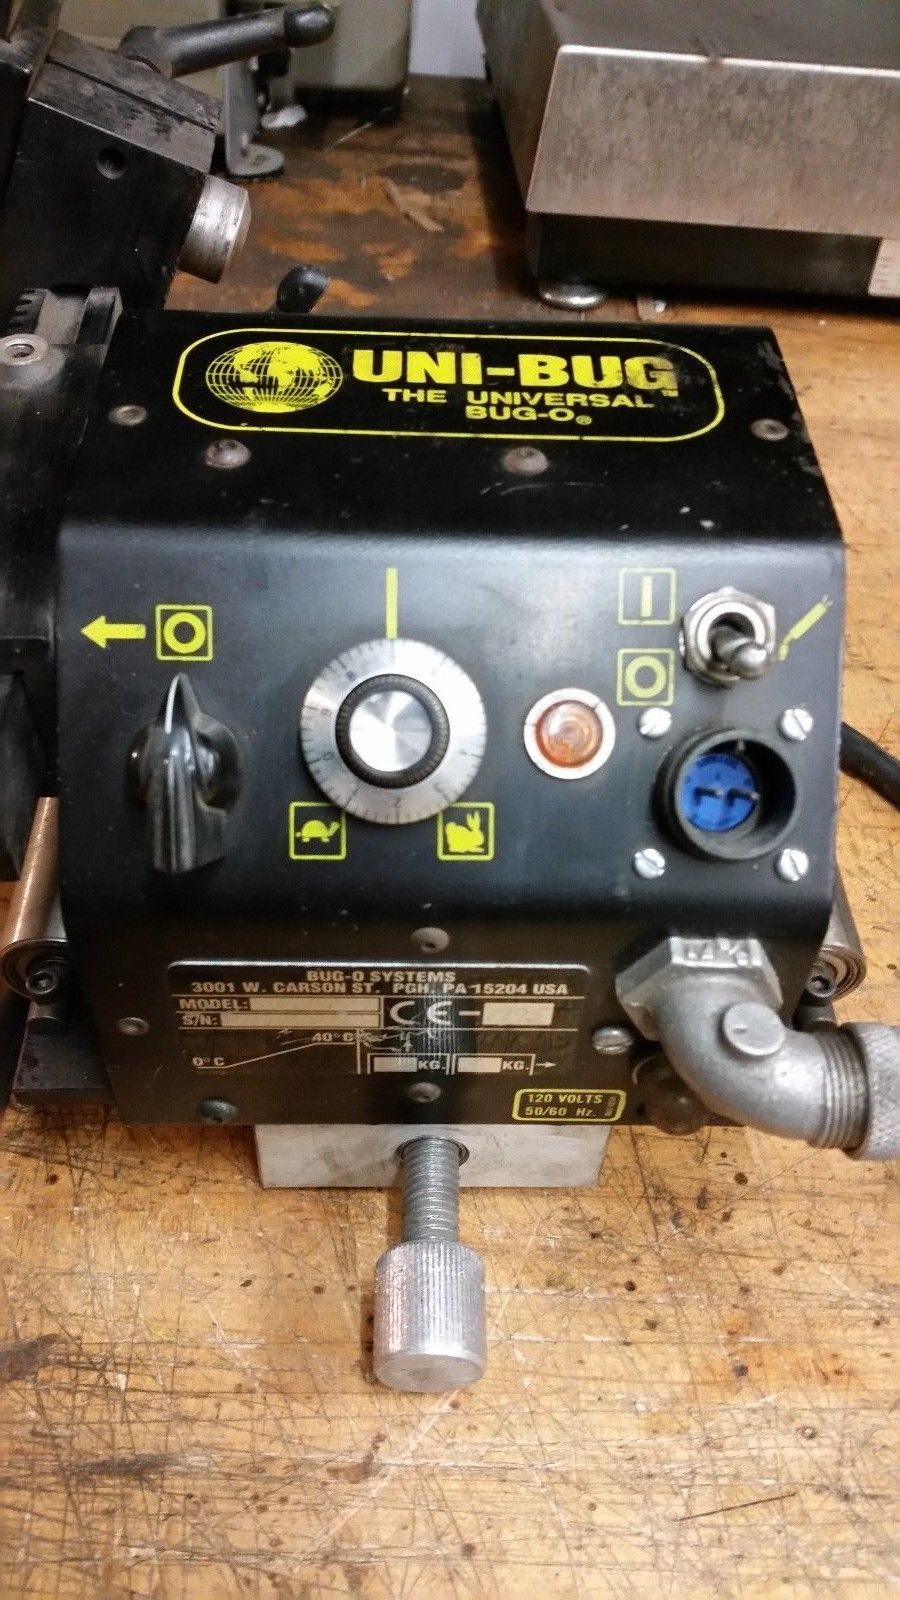 Bug-o Uni-Bug mig welding cutting track tractor motorized torch carrier robot